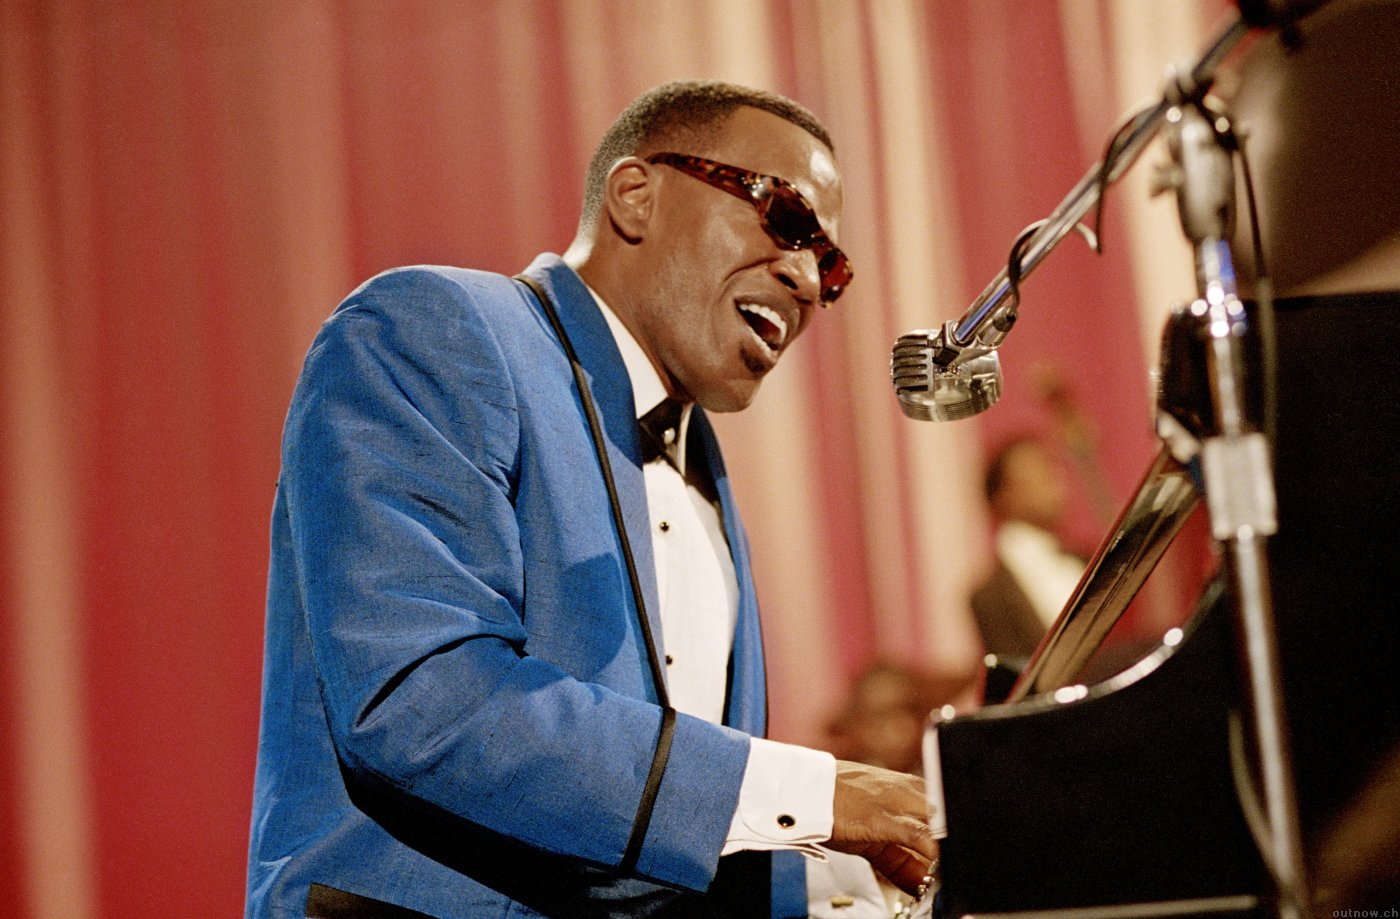 an analysis of ray charles the movie Legendary musician ray charles battled decades-long heroin addiction march 21, 2011 addiction research one of music's all-time legends, the late ray charles, battled heroin addiction for many years – an addiction that many believe affected his life more than losing his eyesight ever could.